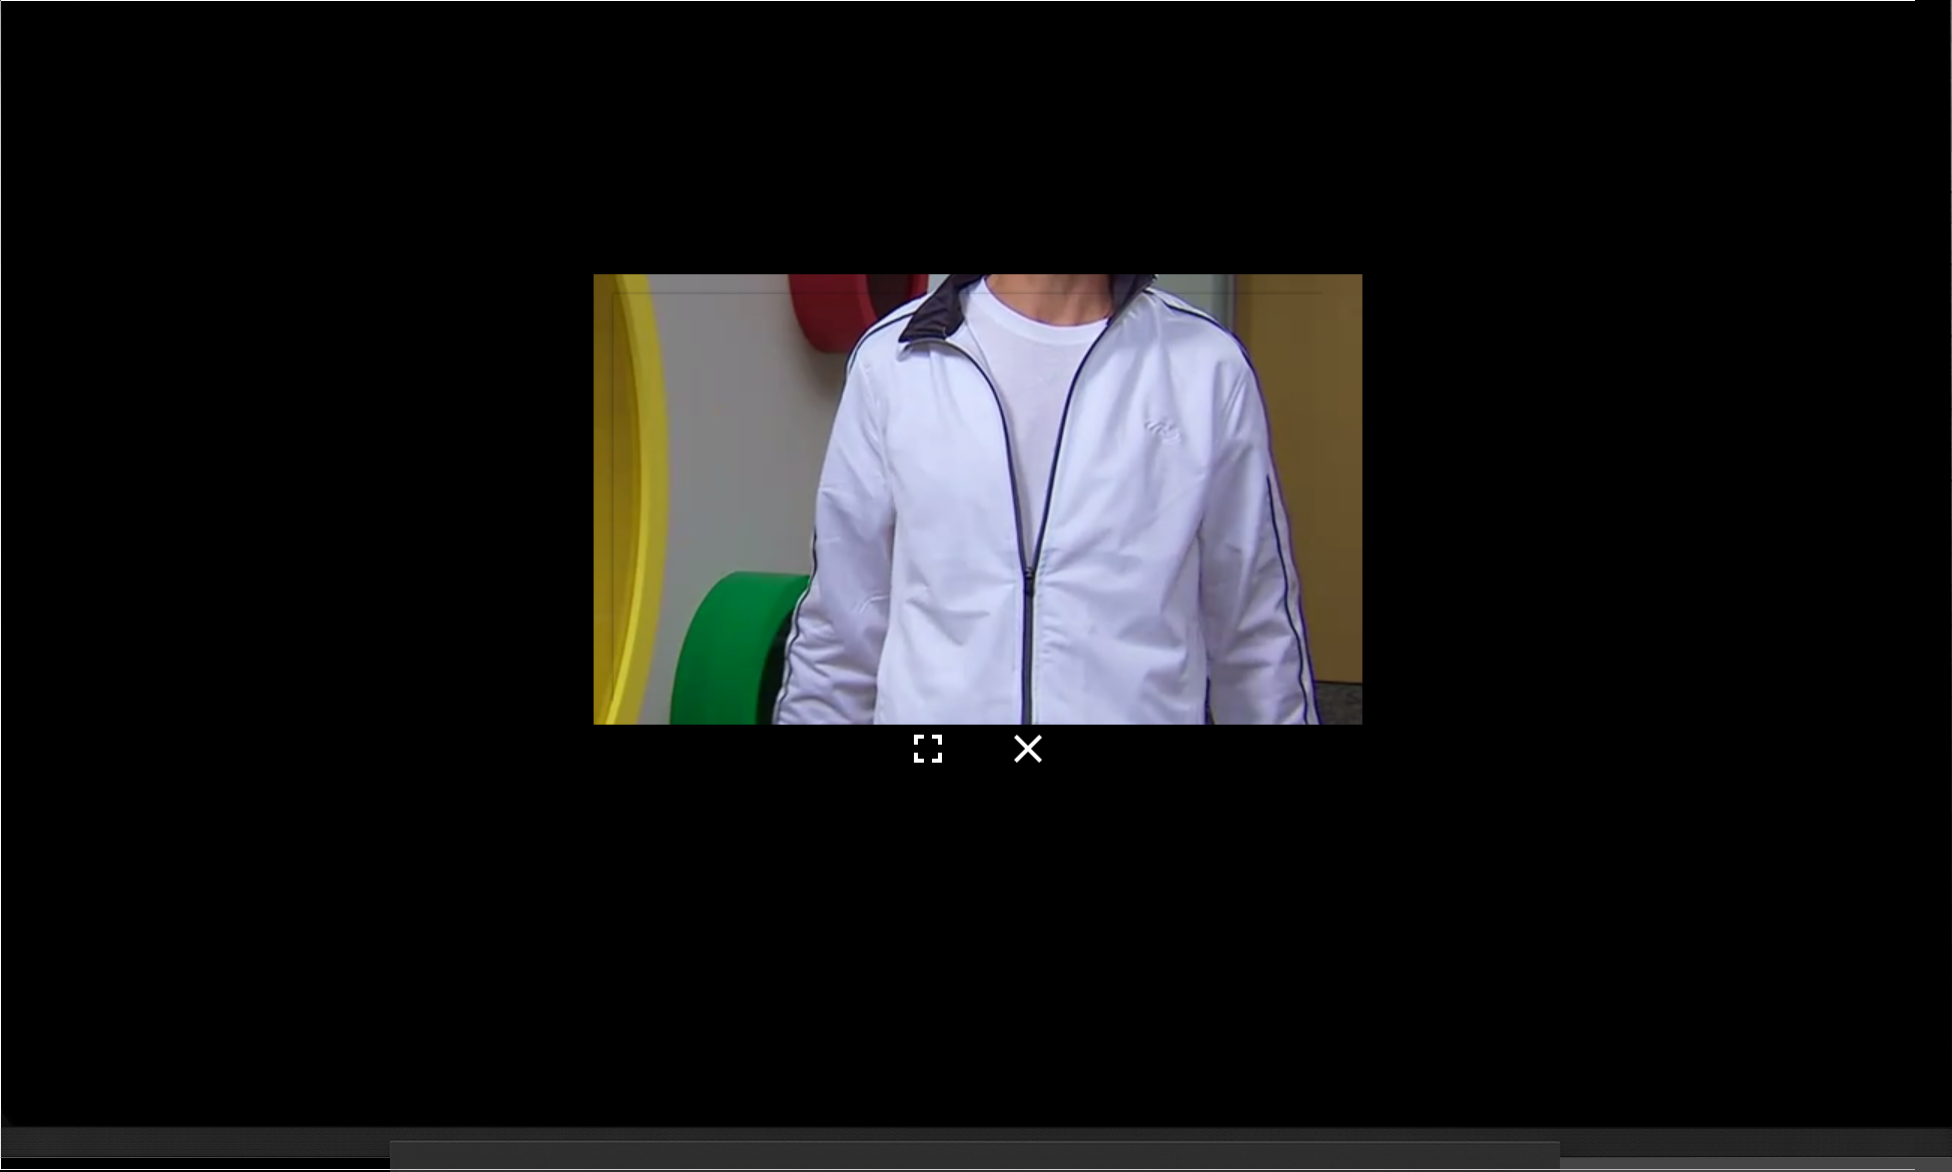 Android TV Leanback & Picture in picture resizing of video · Issue